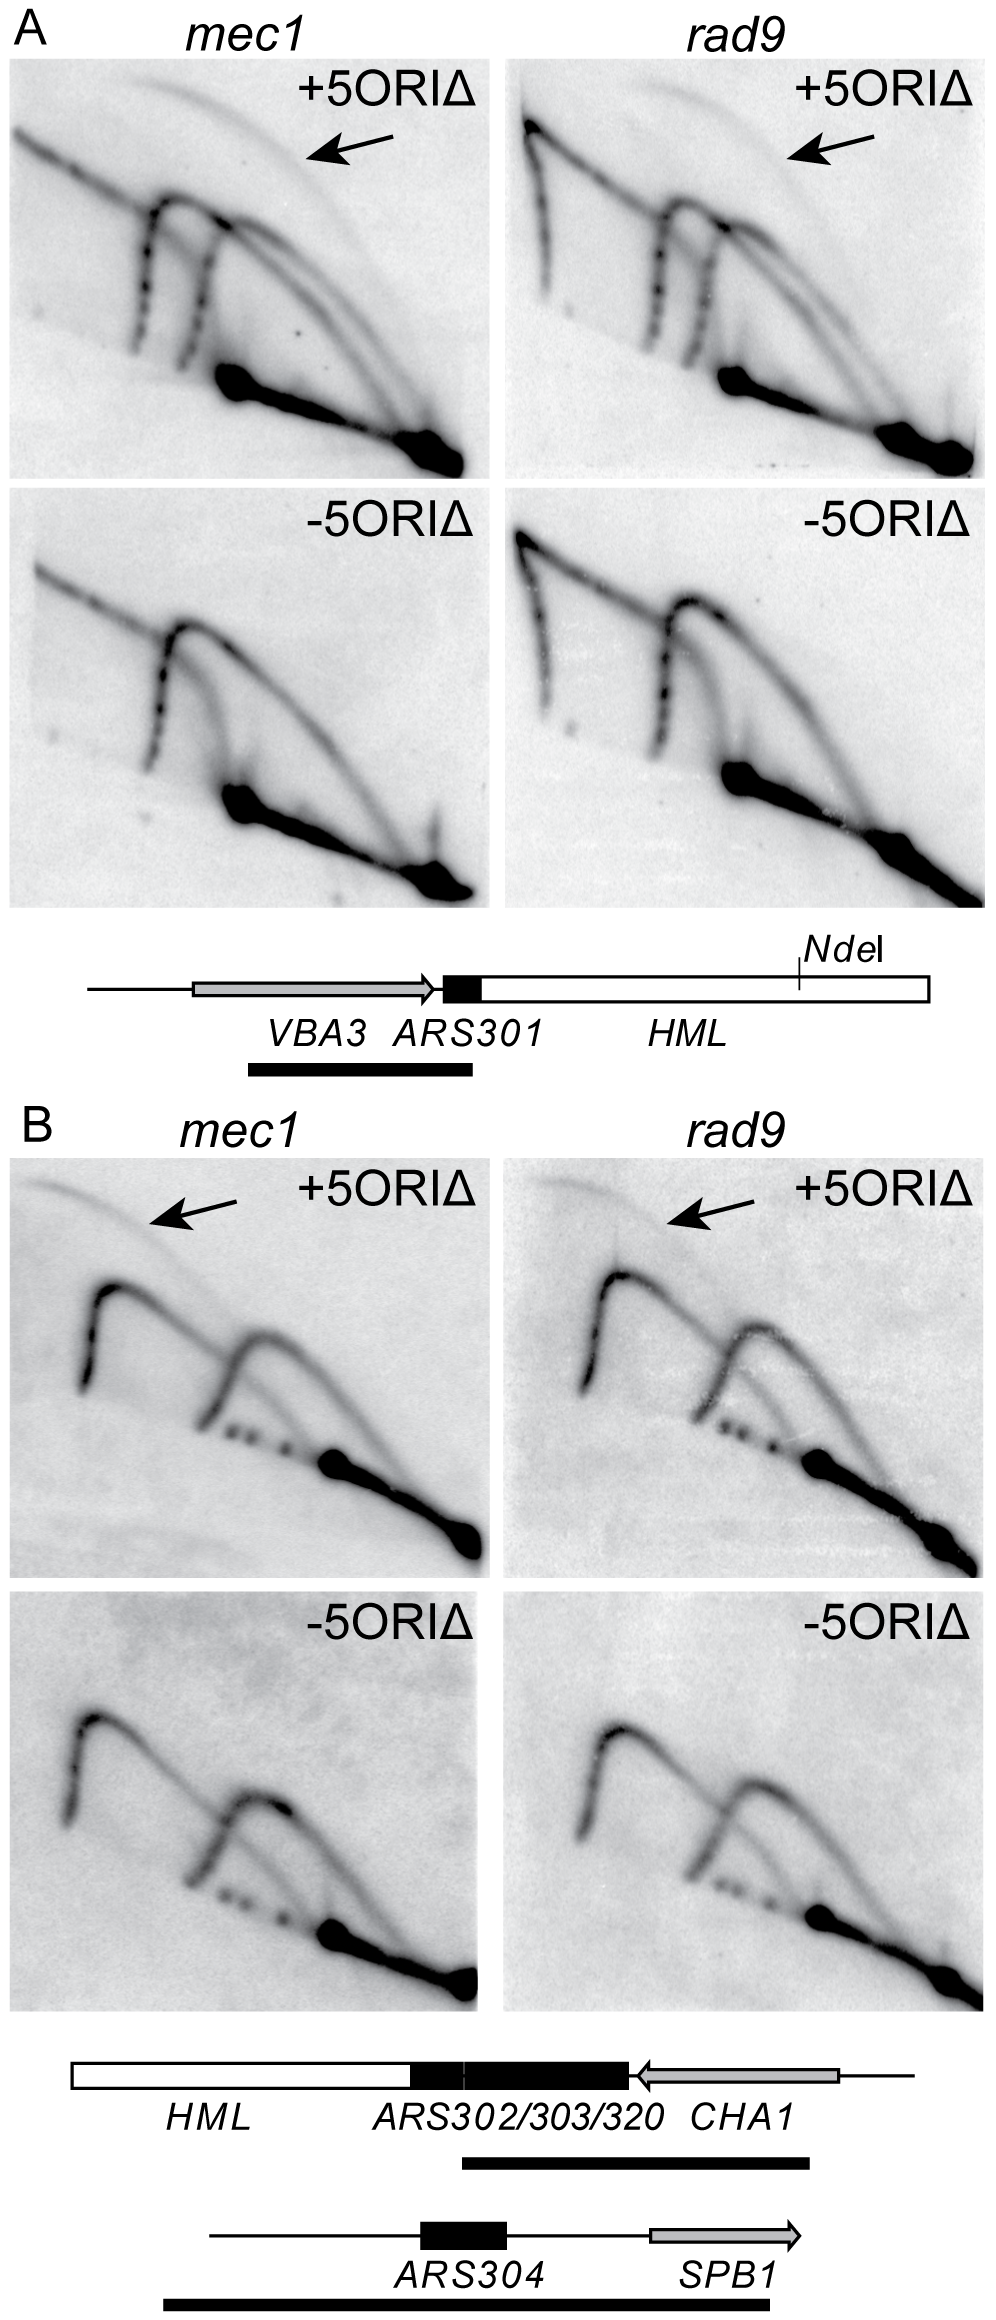 Activity of dormant origins on full-length 5ORIΔ chromosome in <i>mec1</i> and <i>rad9</i> mutants.